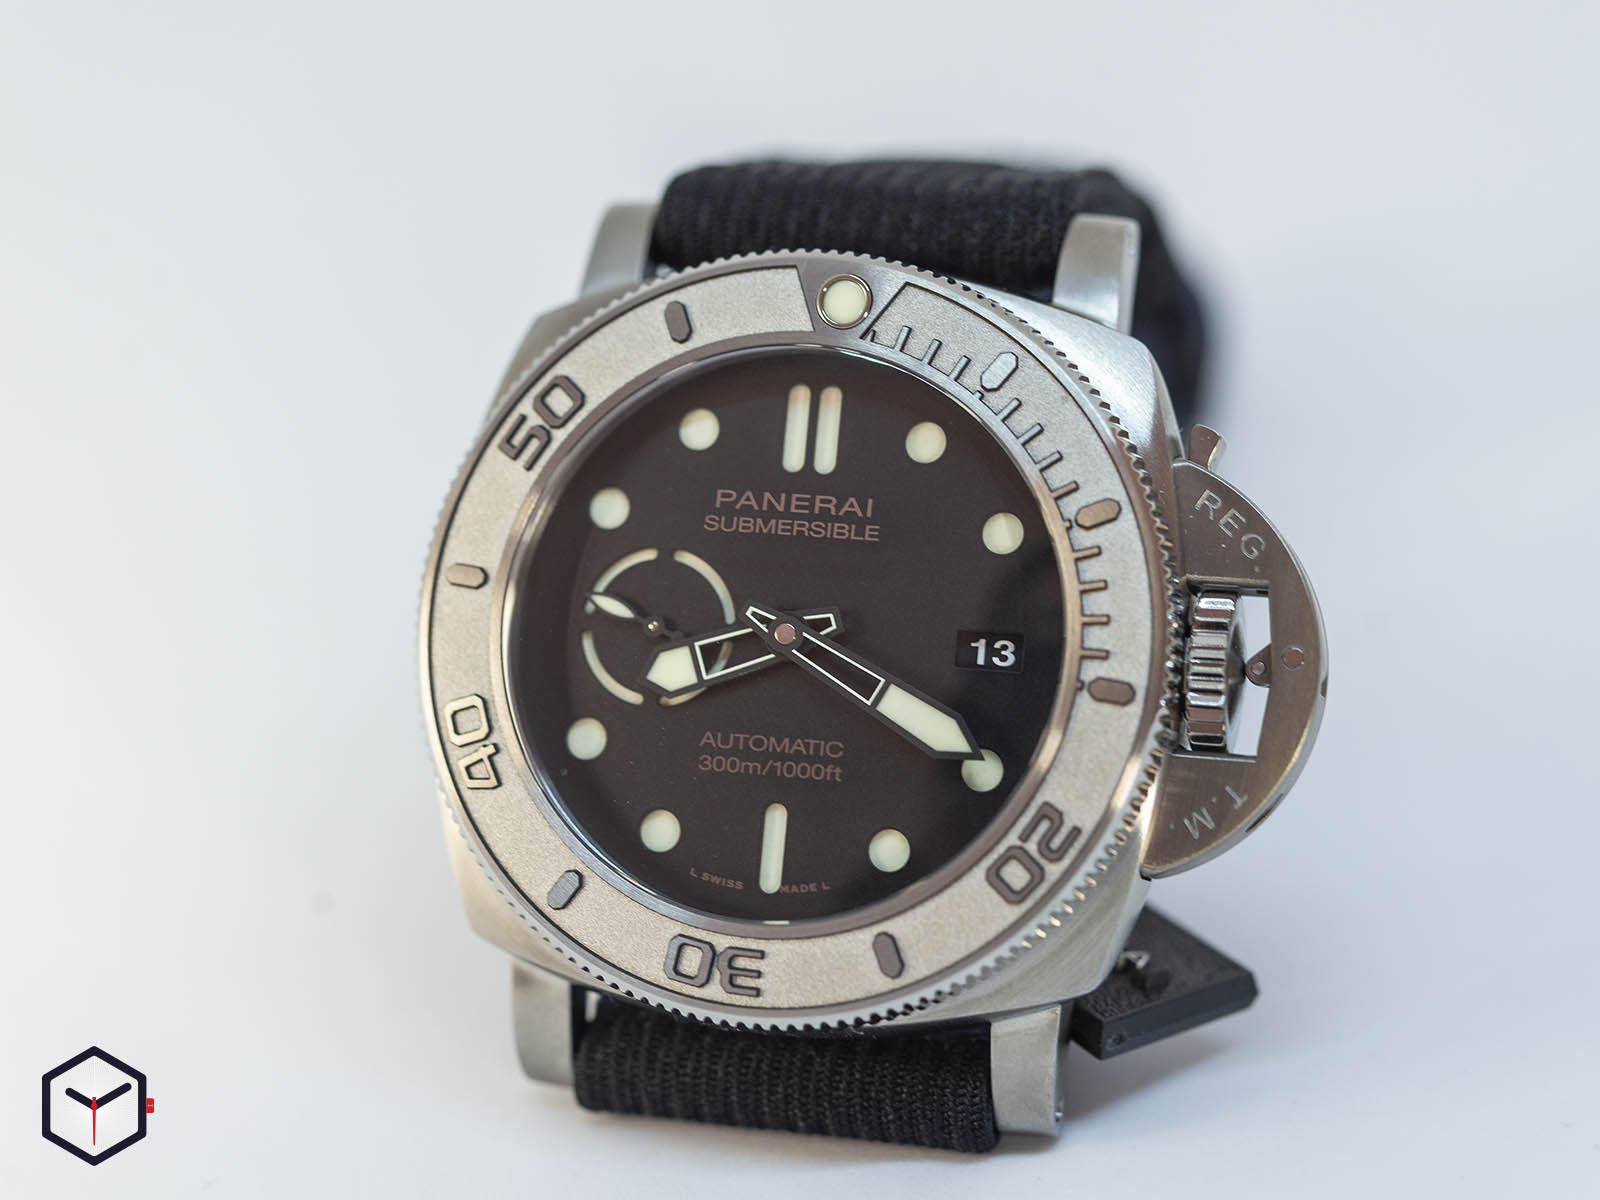 pam00984-officine-panerai-submersible-mike-horn-edition-47mm-sihh-2019-2.jpg